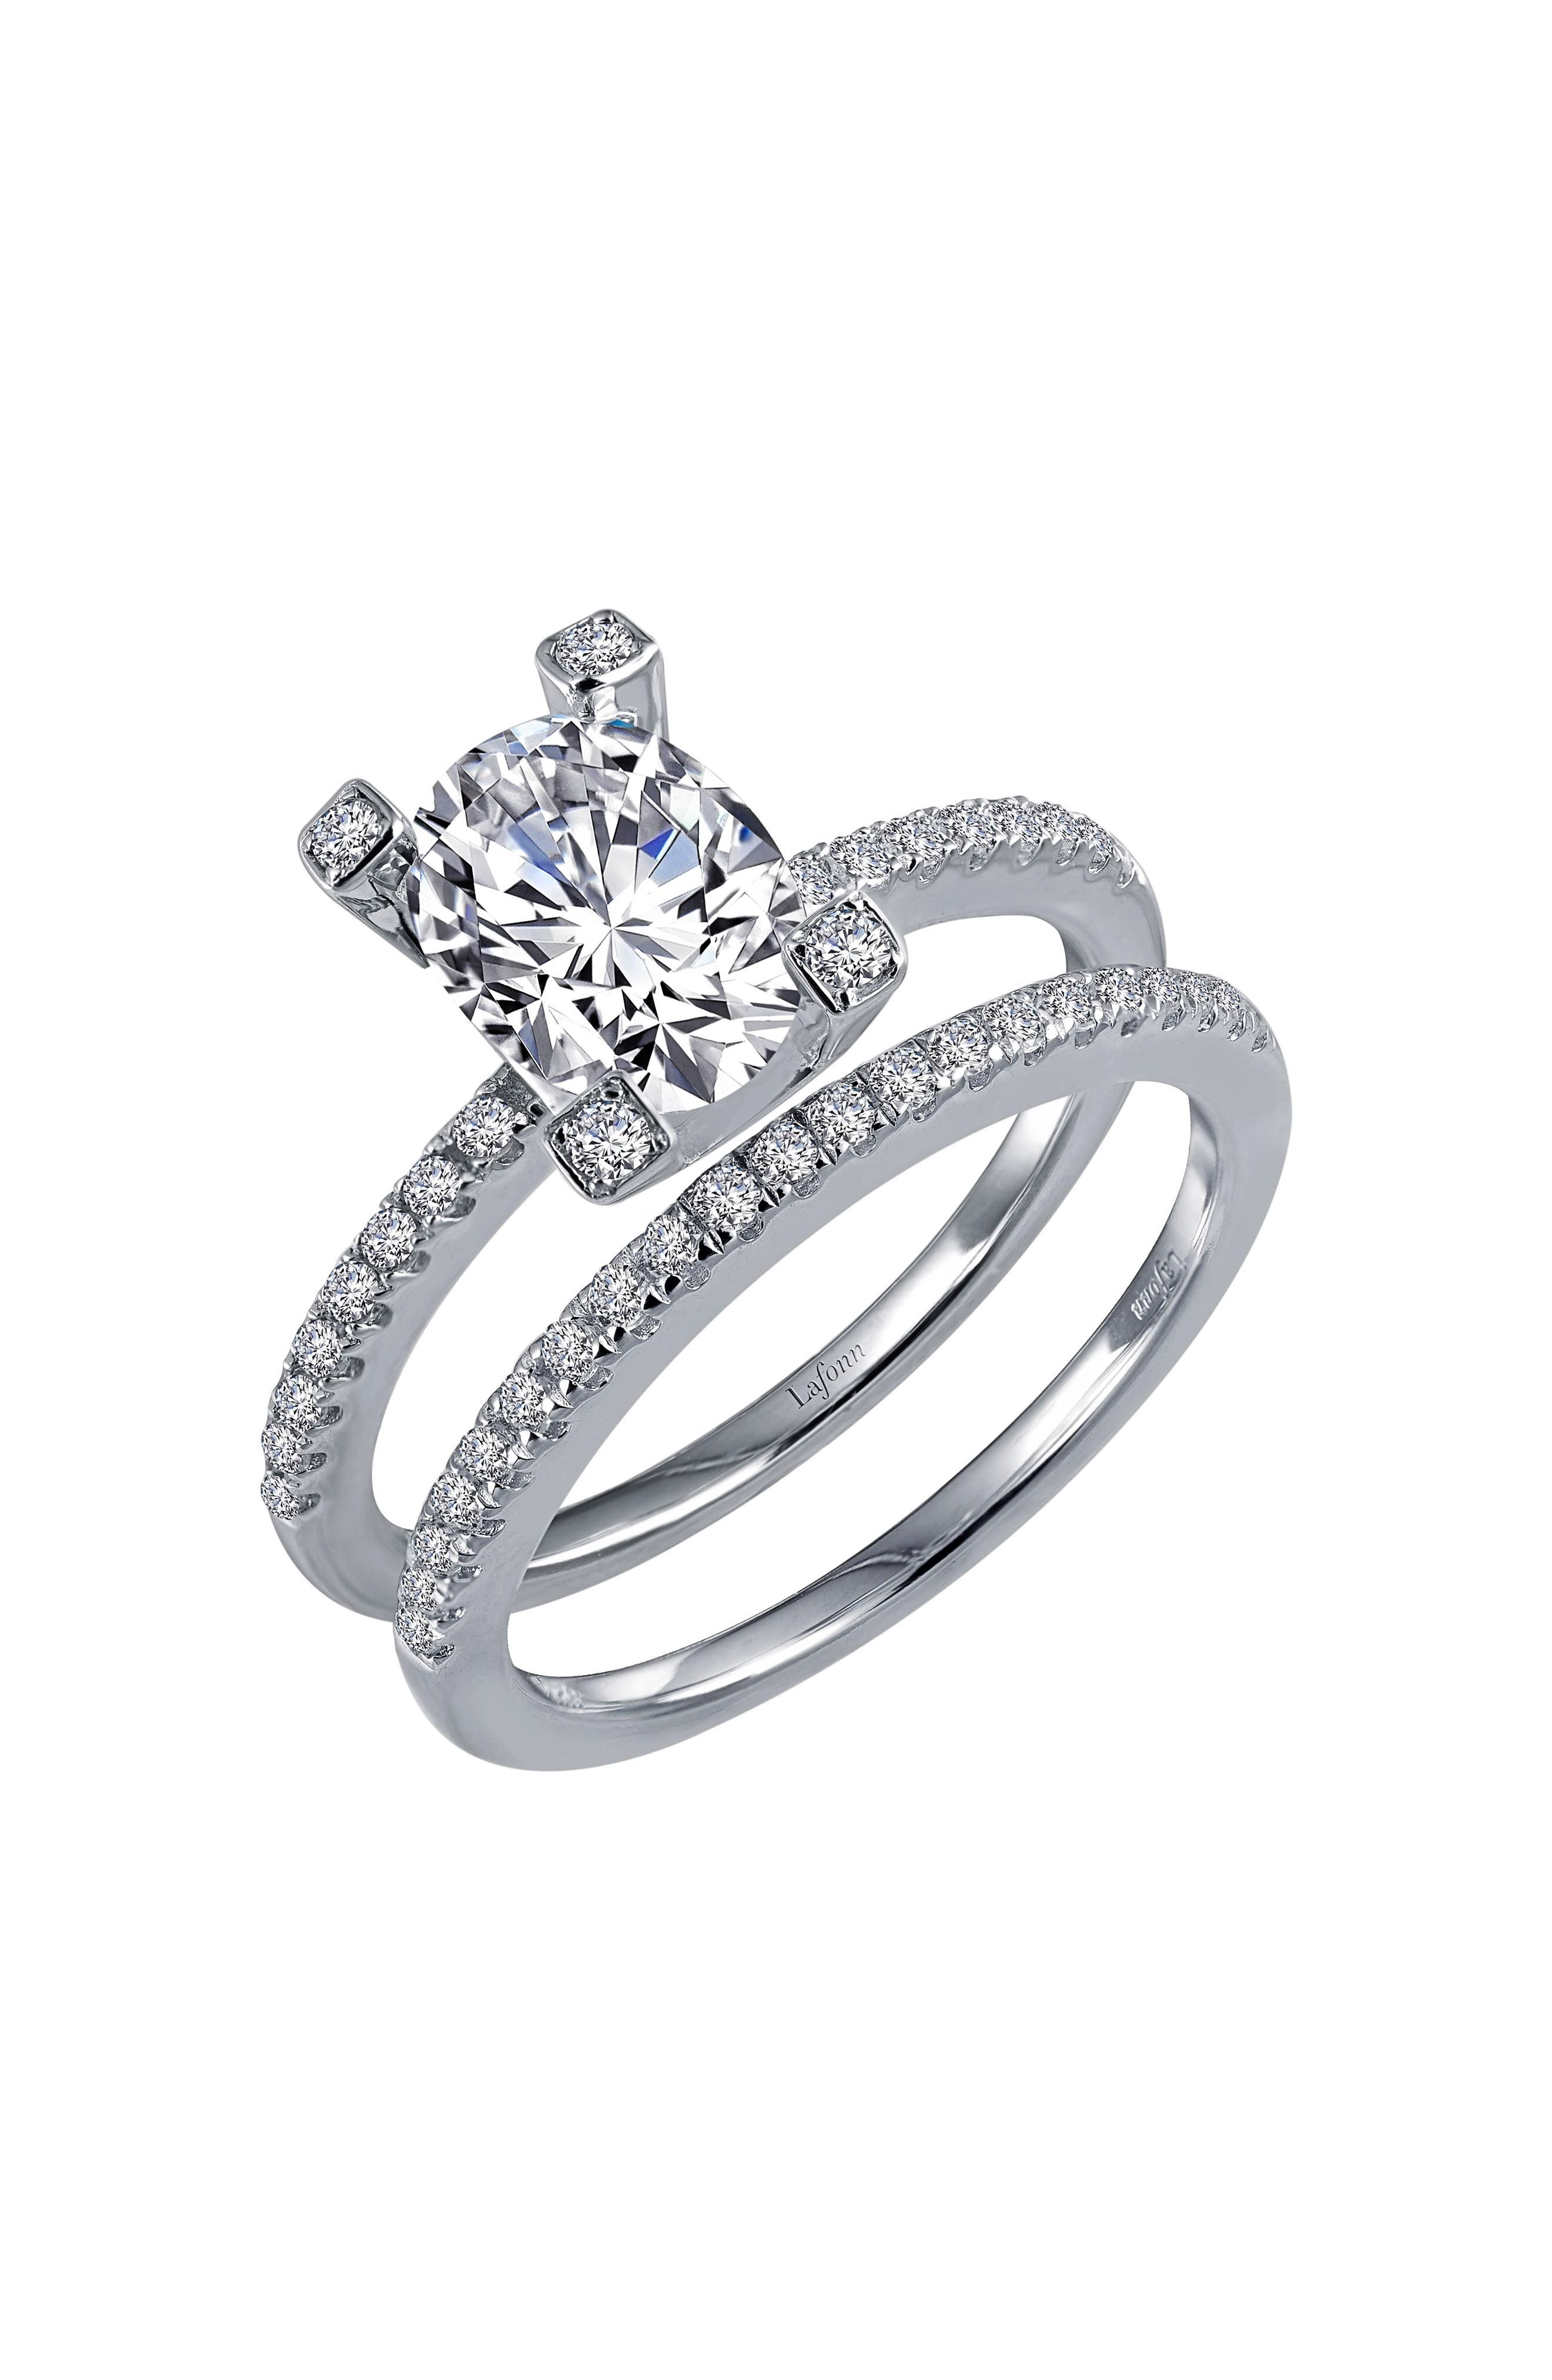 Simulated Diamond Openwork Ring,                             Main thumbnail 1, color,                             040